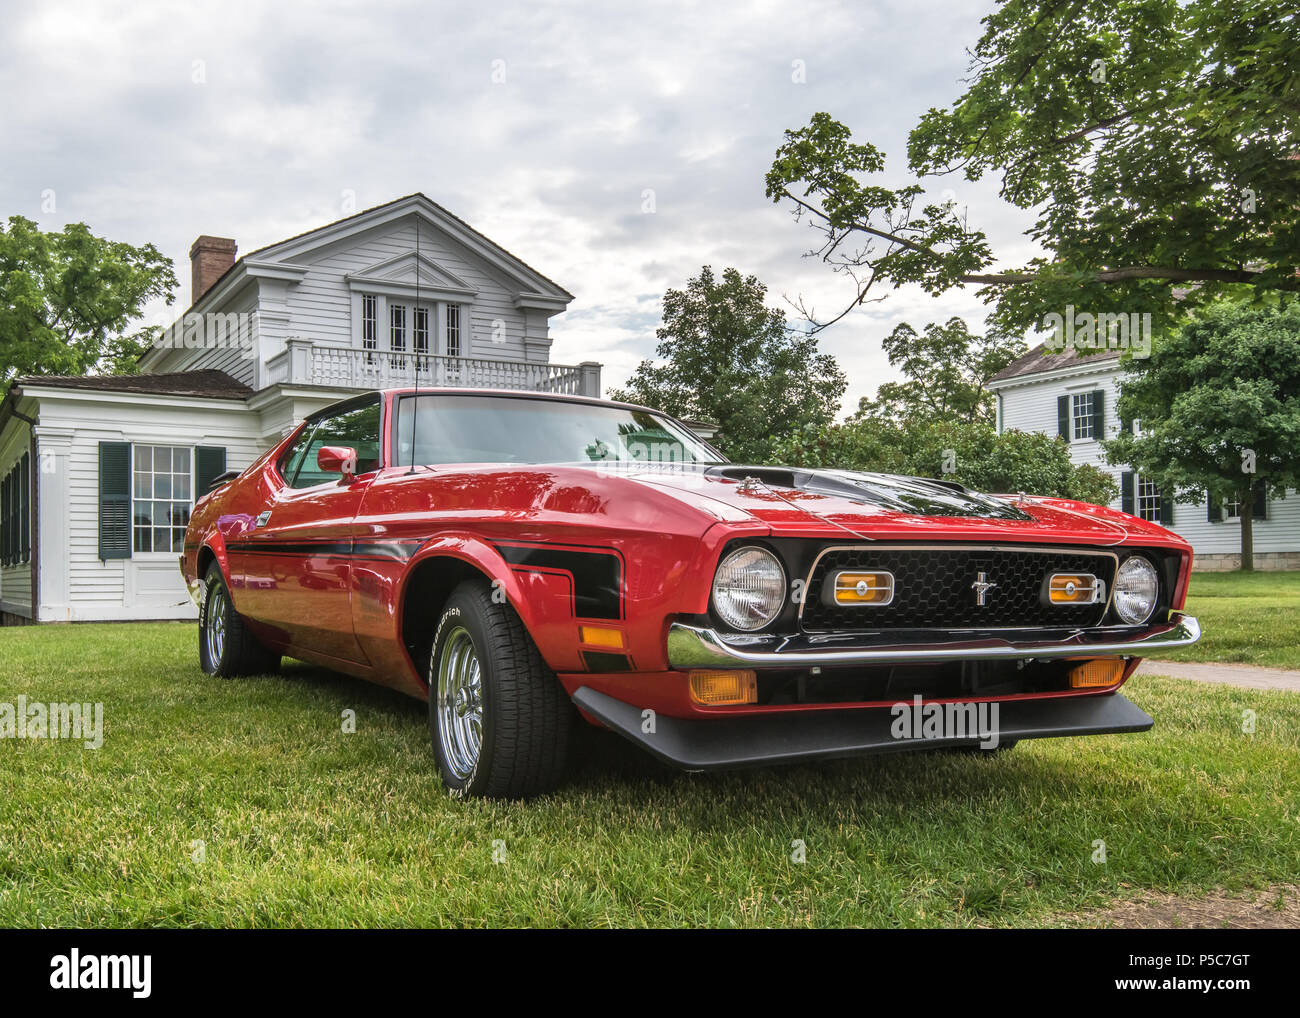 Dearborn mi usa june 16 2018 a 1972 ford mustang mach 1 car at the henry ford thf motor muster car show held at greenfield village